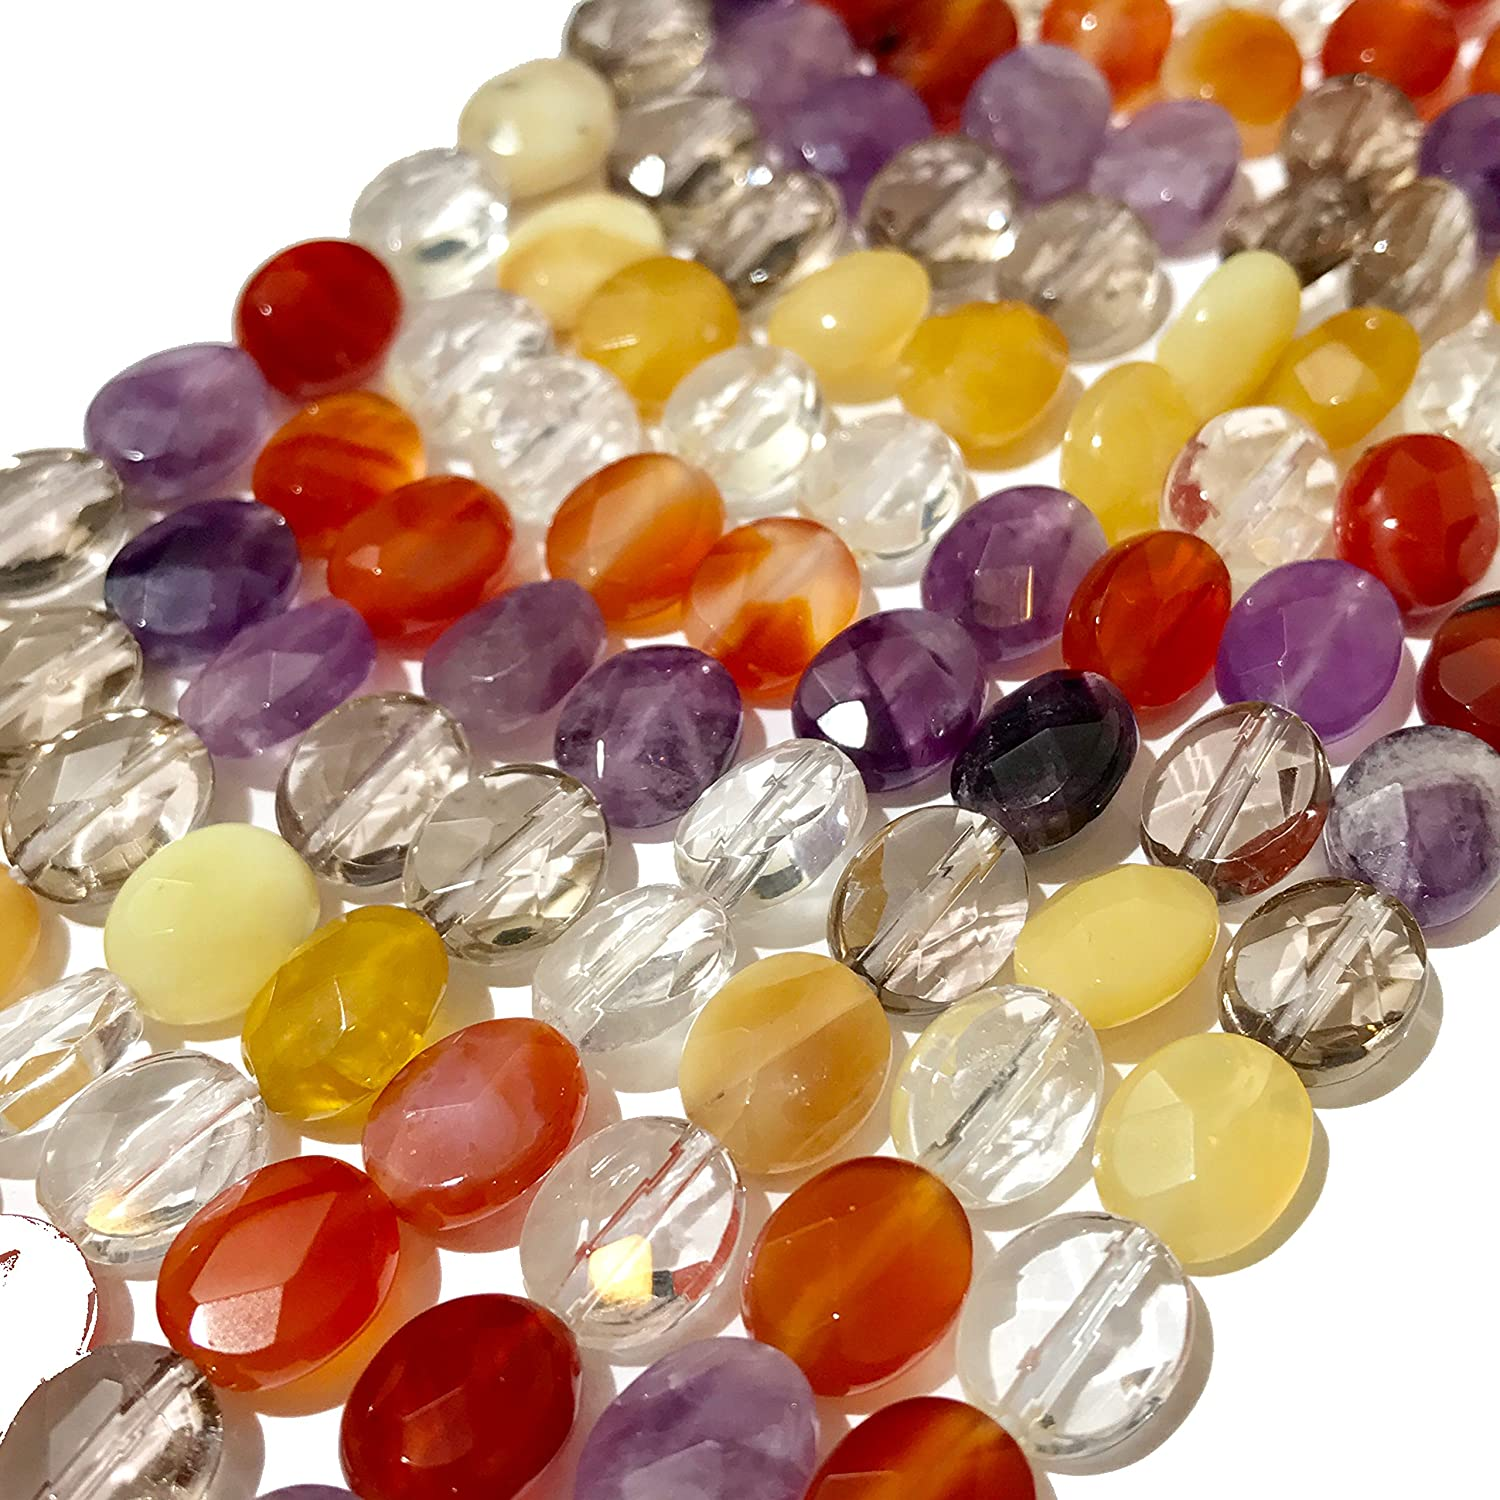 AAA+++6mm Natural Russican Amethyst Gemstones Round Loose Beads 15/'/'